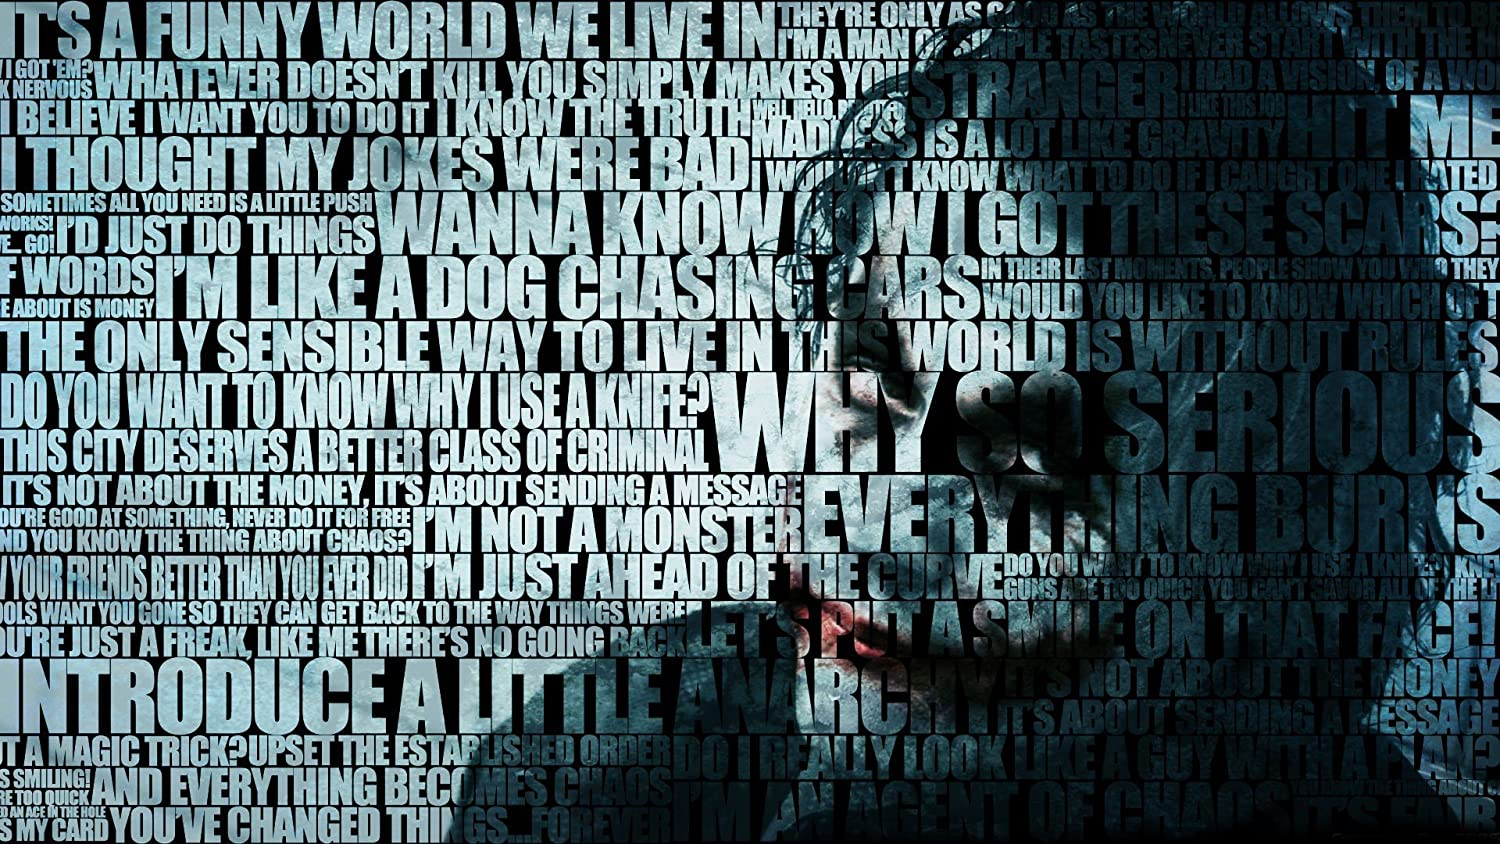 BATMAN QUOTES THE JOKER TYPOGRAPHIC PORTRAIT TYPOGRAPHY WALLPAPER ON FINE ART PAPER HD QUALITY WALLPAPER POSTER